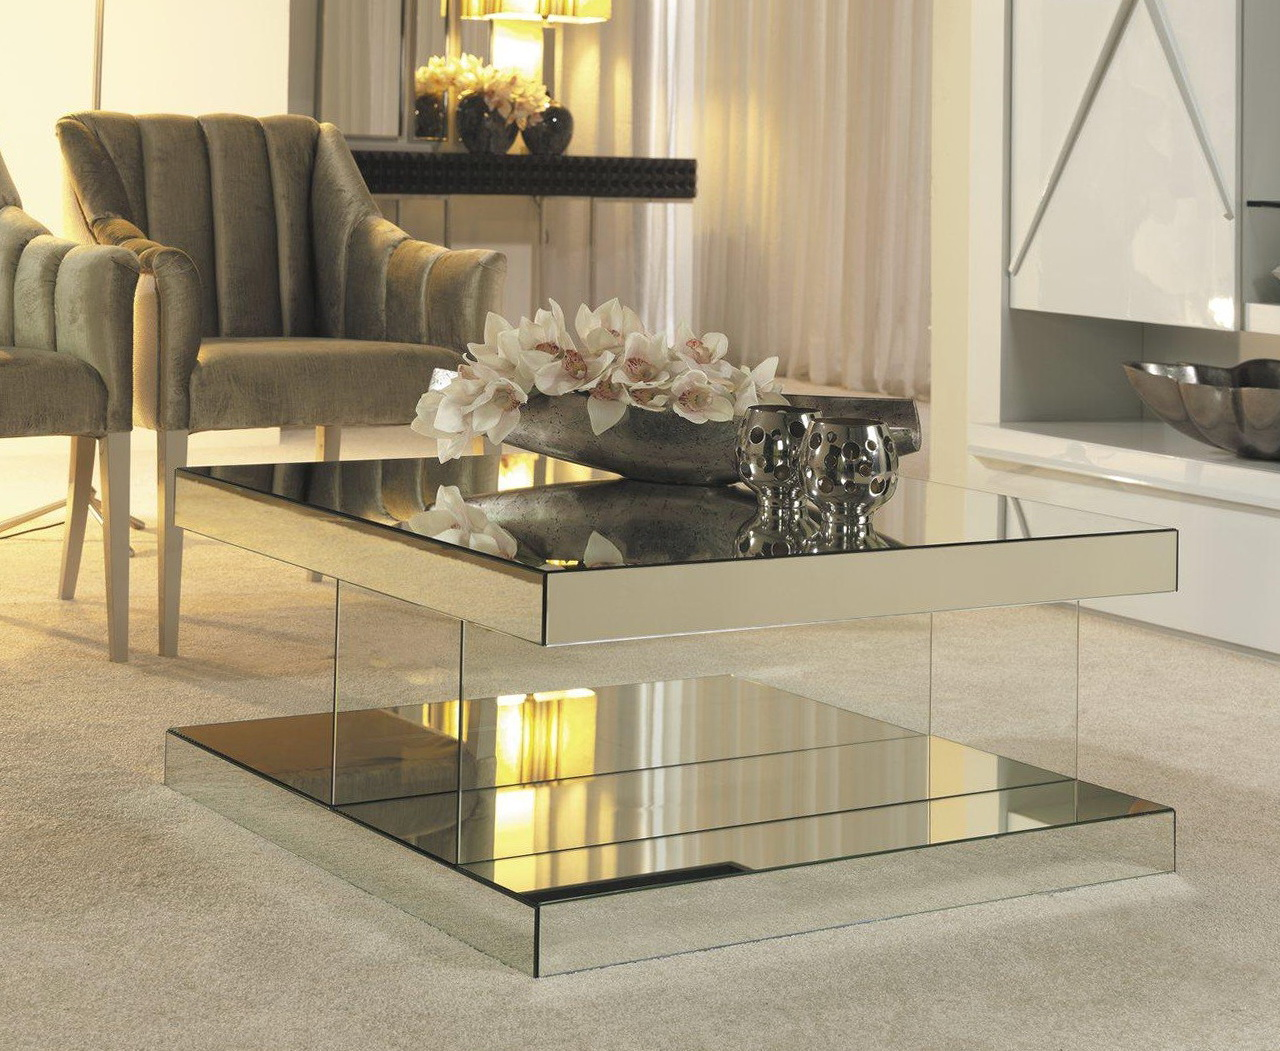 luxury mirrored coffee table JPHSQWJ